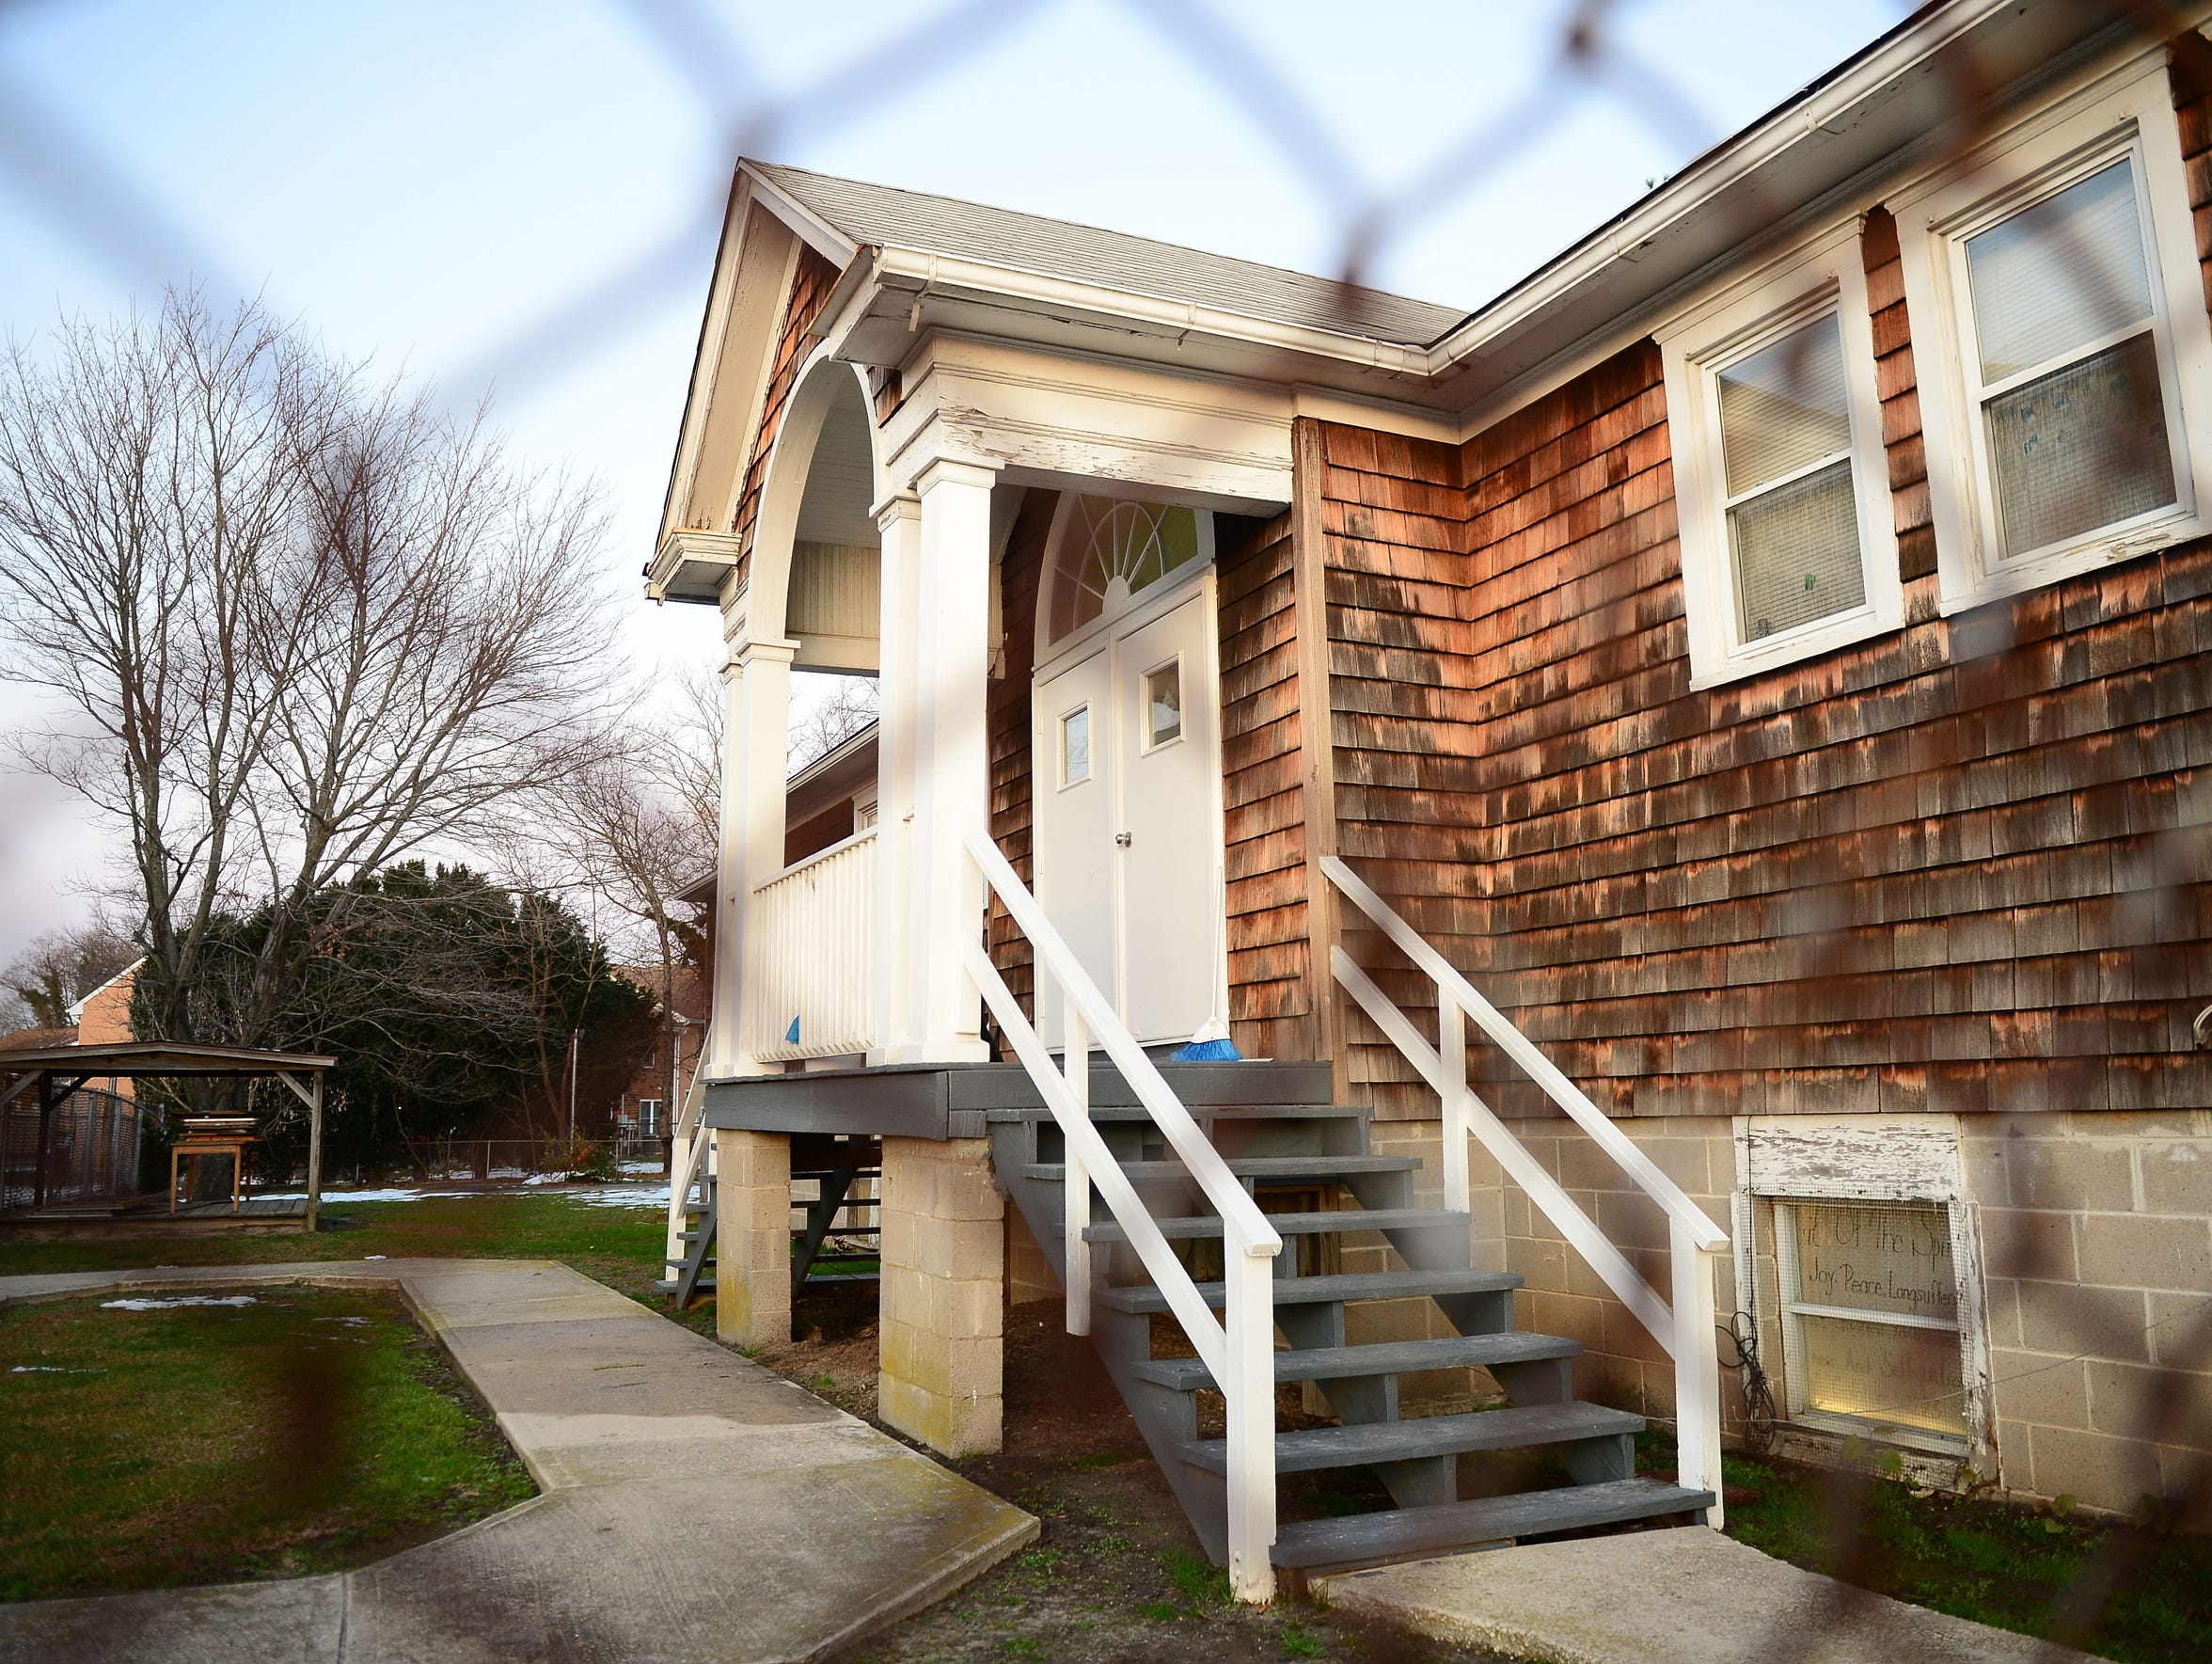 The Immanuel Shelter is located in Rehoboth Beach and